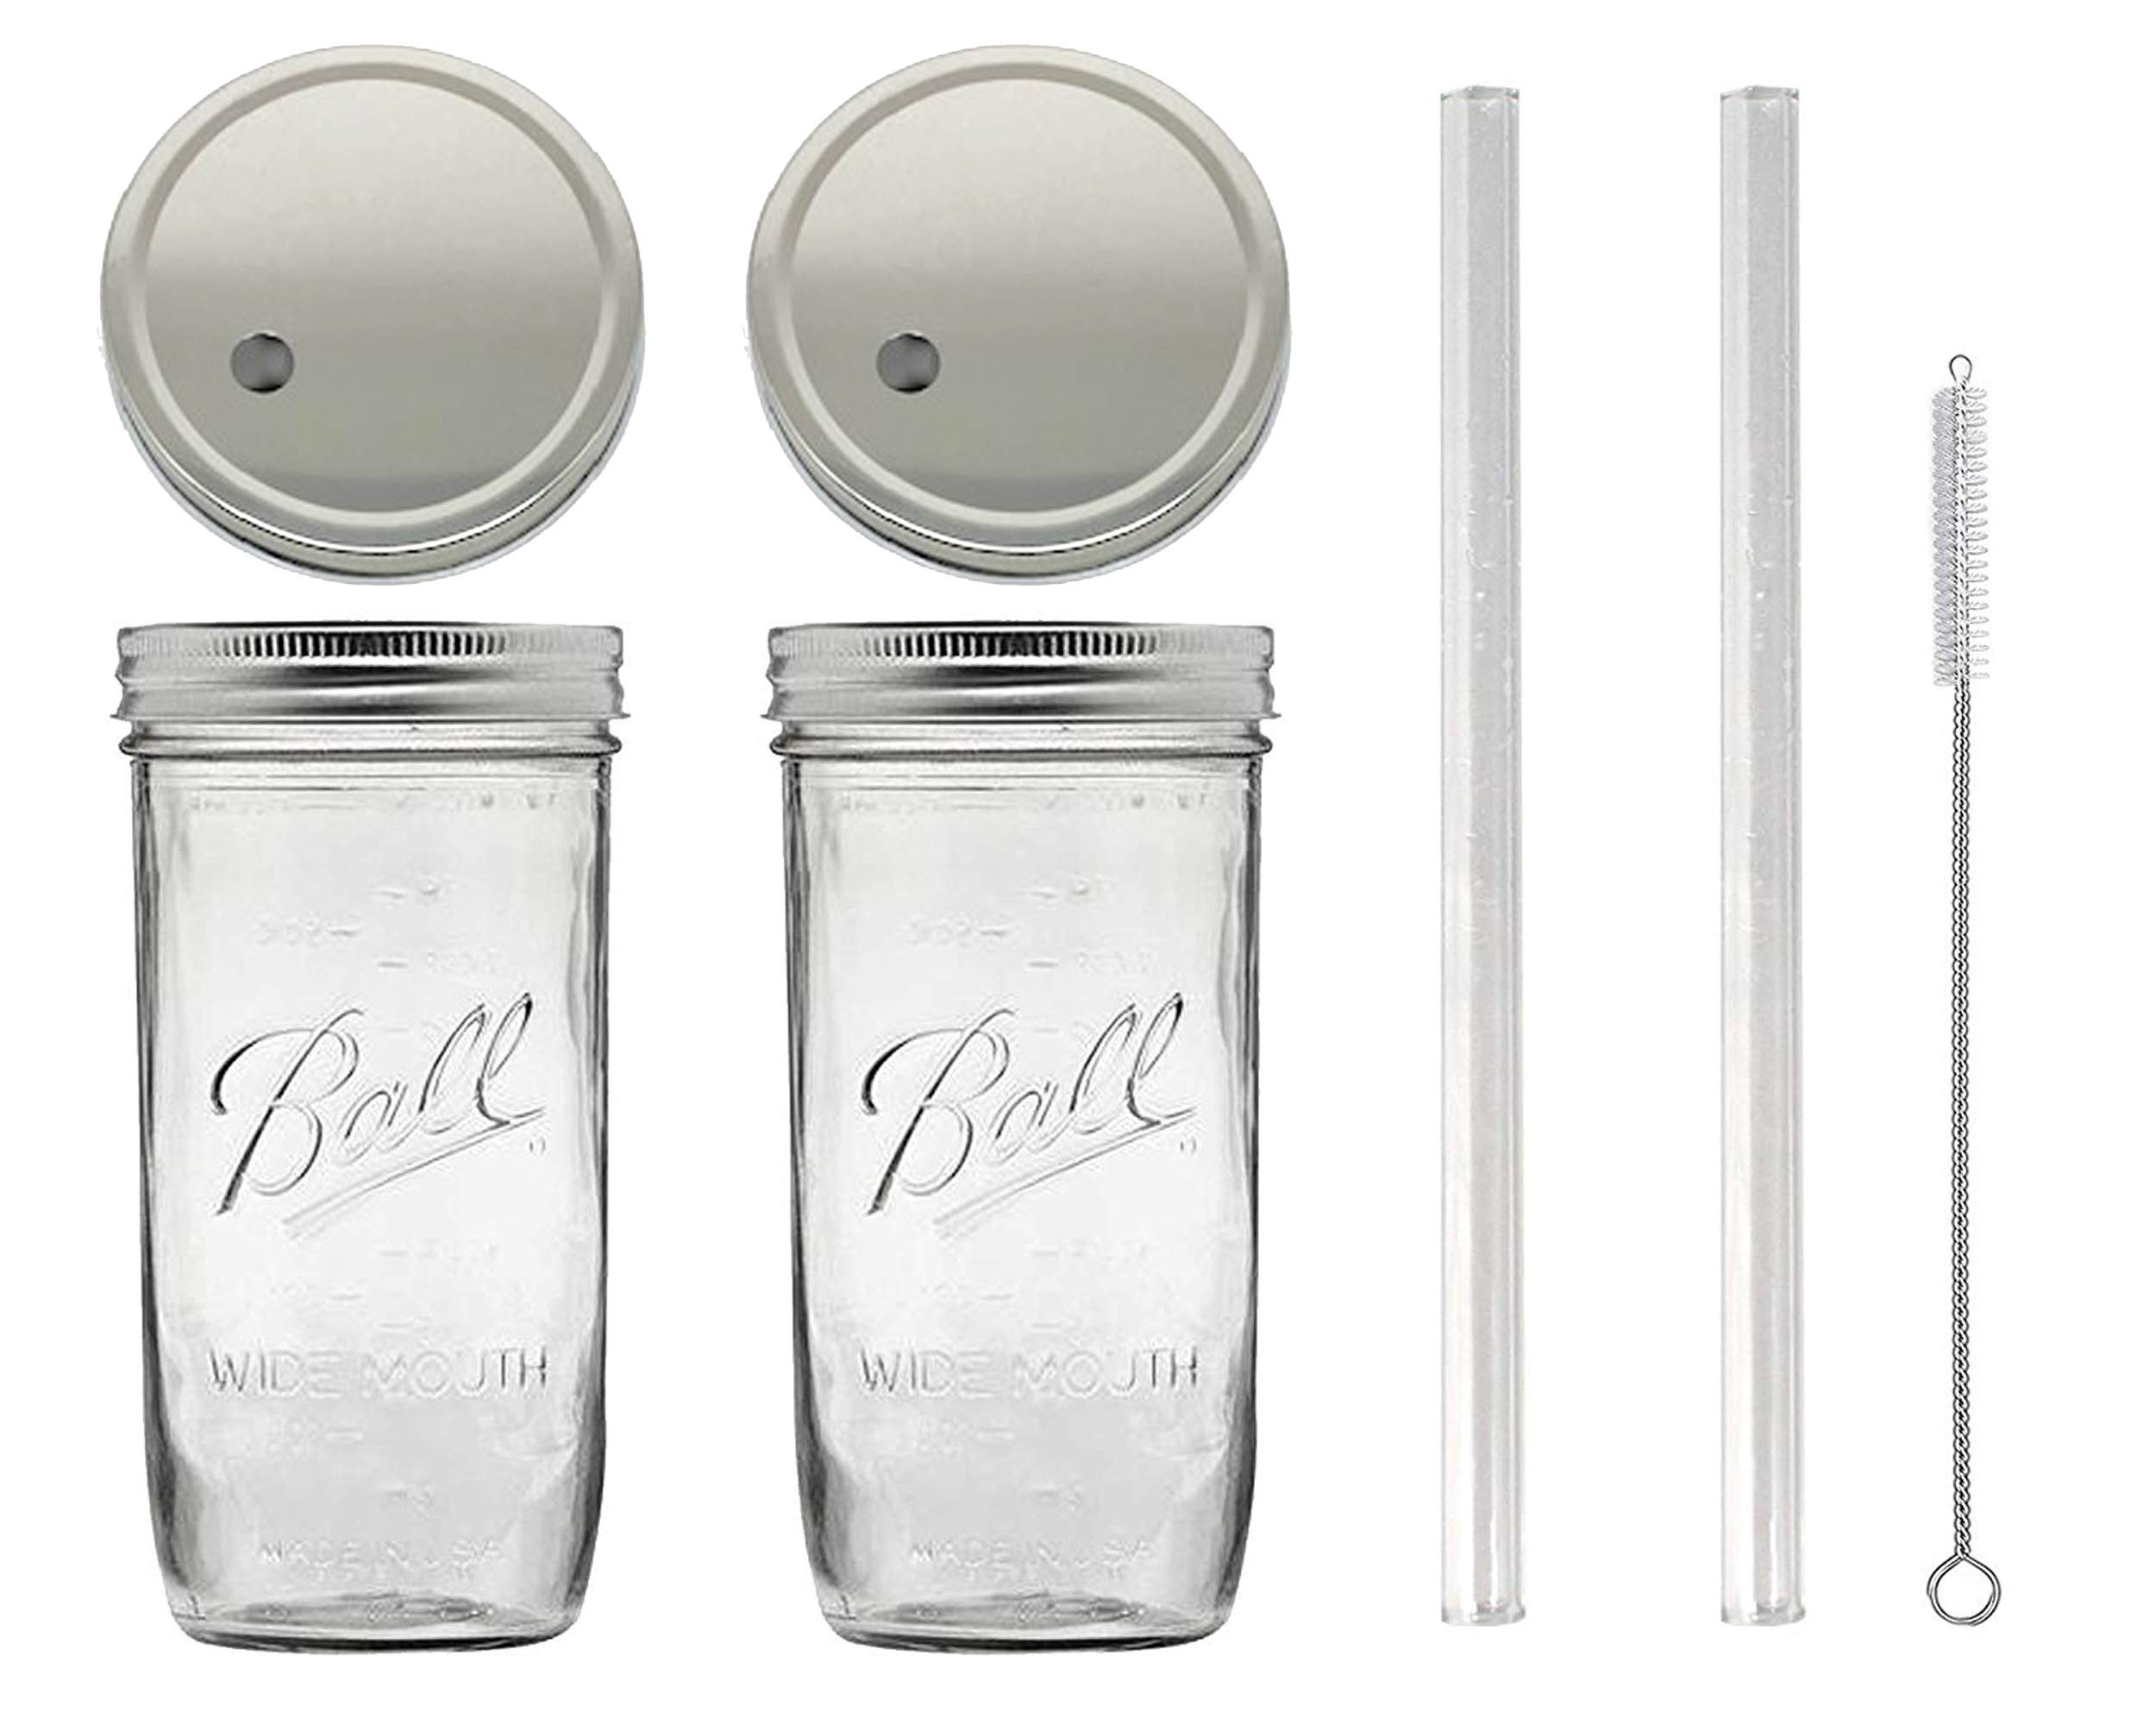 (2) 24 oz Wide Mouth Glass Mason Drinking Jars with 2 Silver Lids, 2 Glass Straws (10''x 9.5mm) and 1 Straw Cleaner